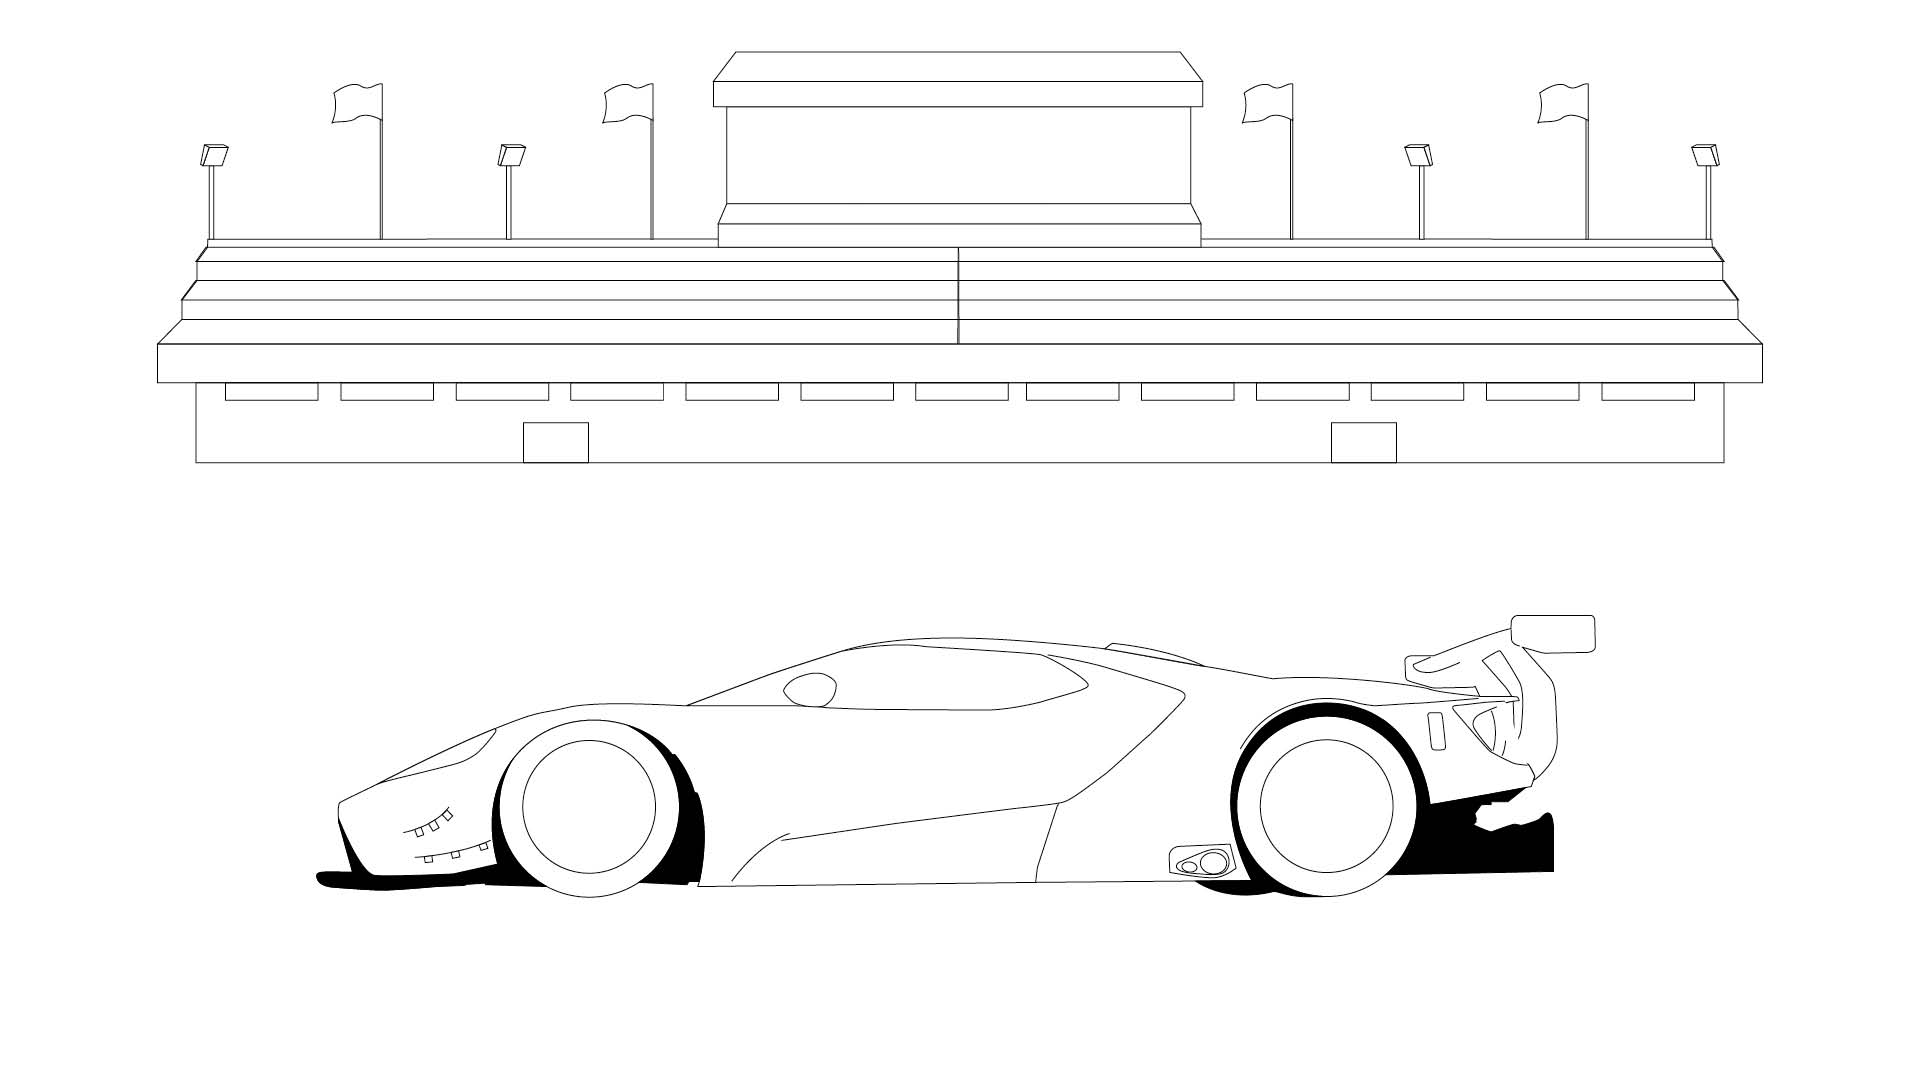 Ford Stay Home GT colouring in poster